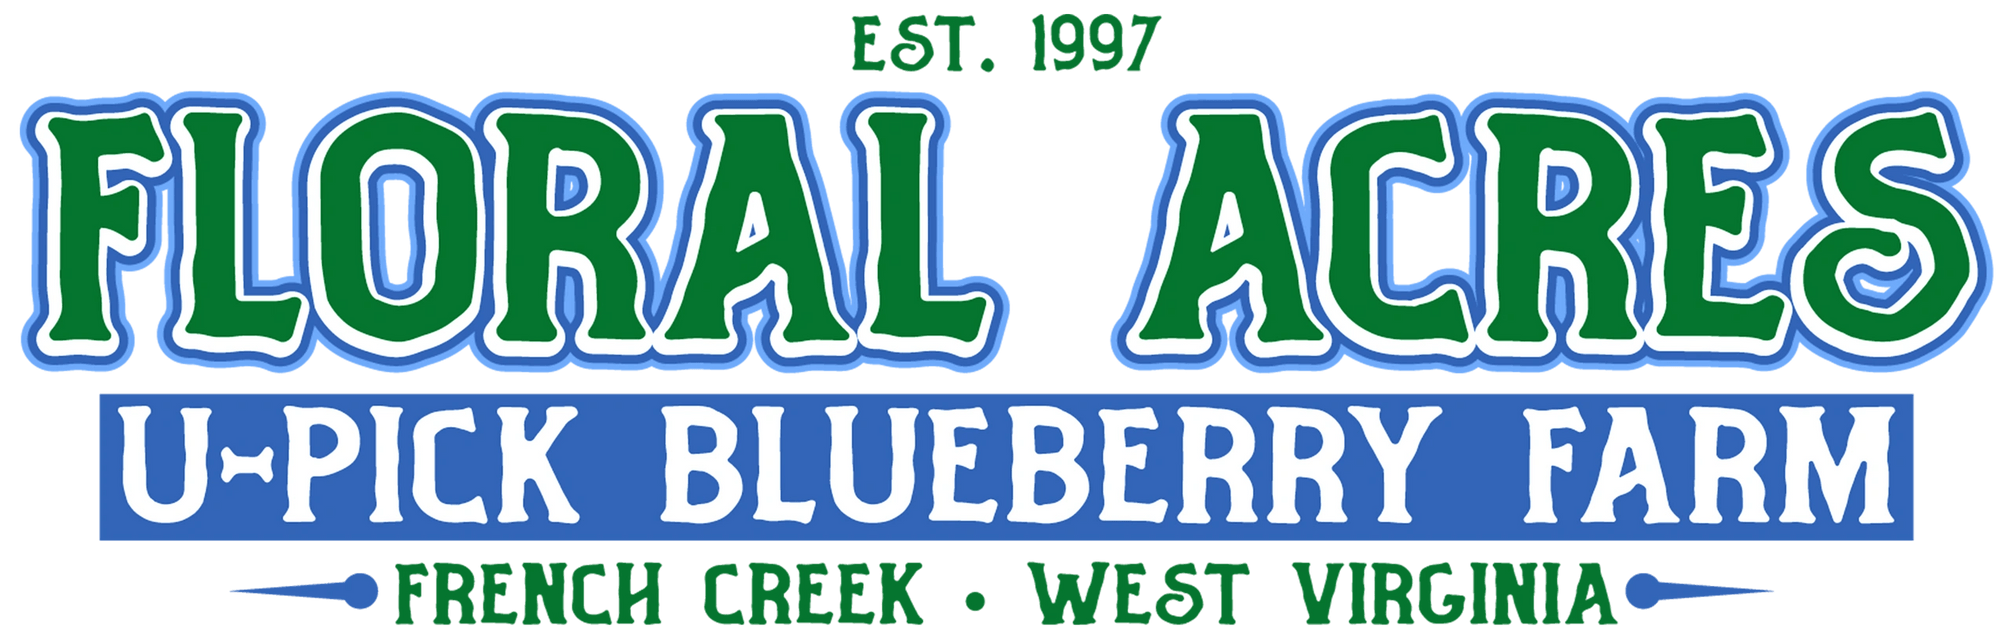 Floral Acres Blueberry Farm